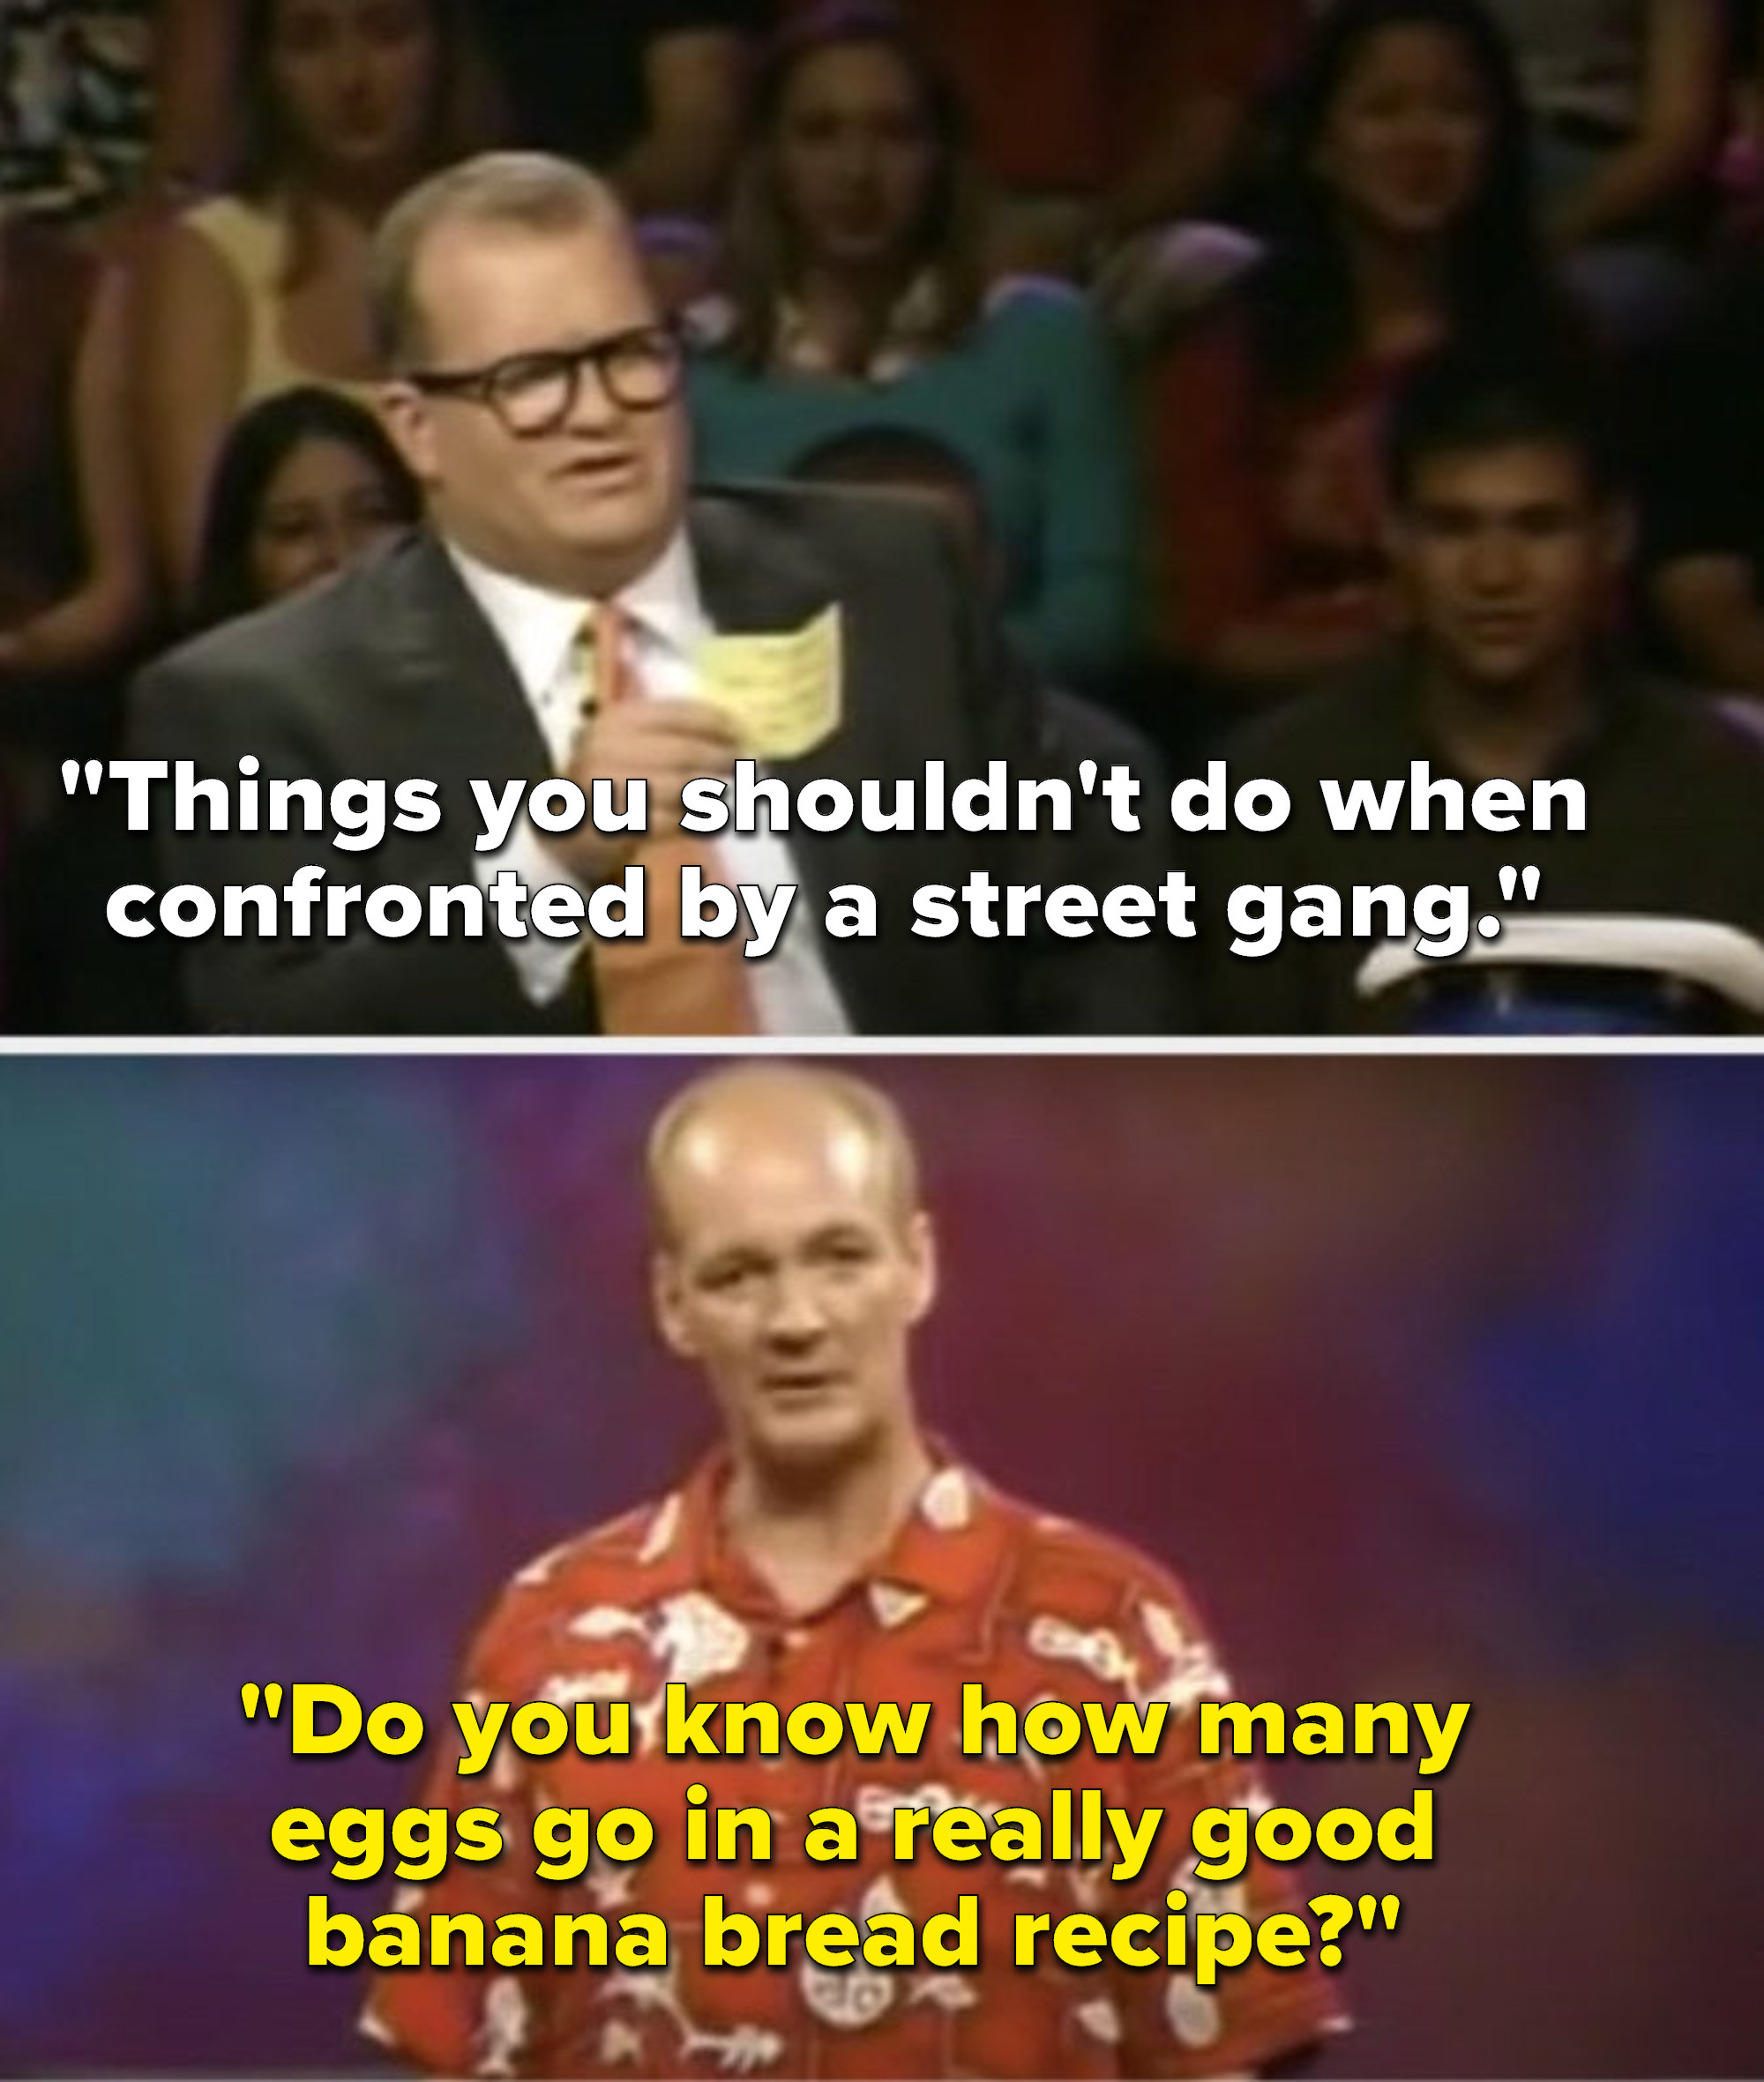 """Carey says, """"Things you shouldn't do when confronted by a street gang,"""" and Mochrie says, """"Do you know how many eggs go in a really good banana bread recipe"""""""